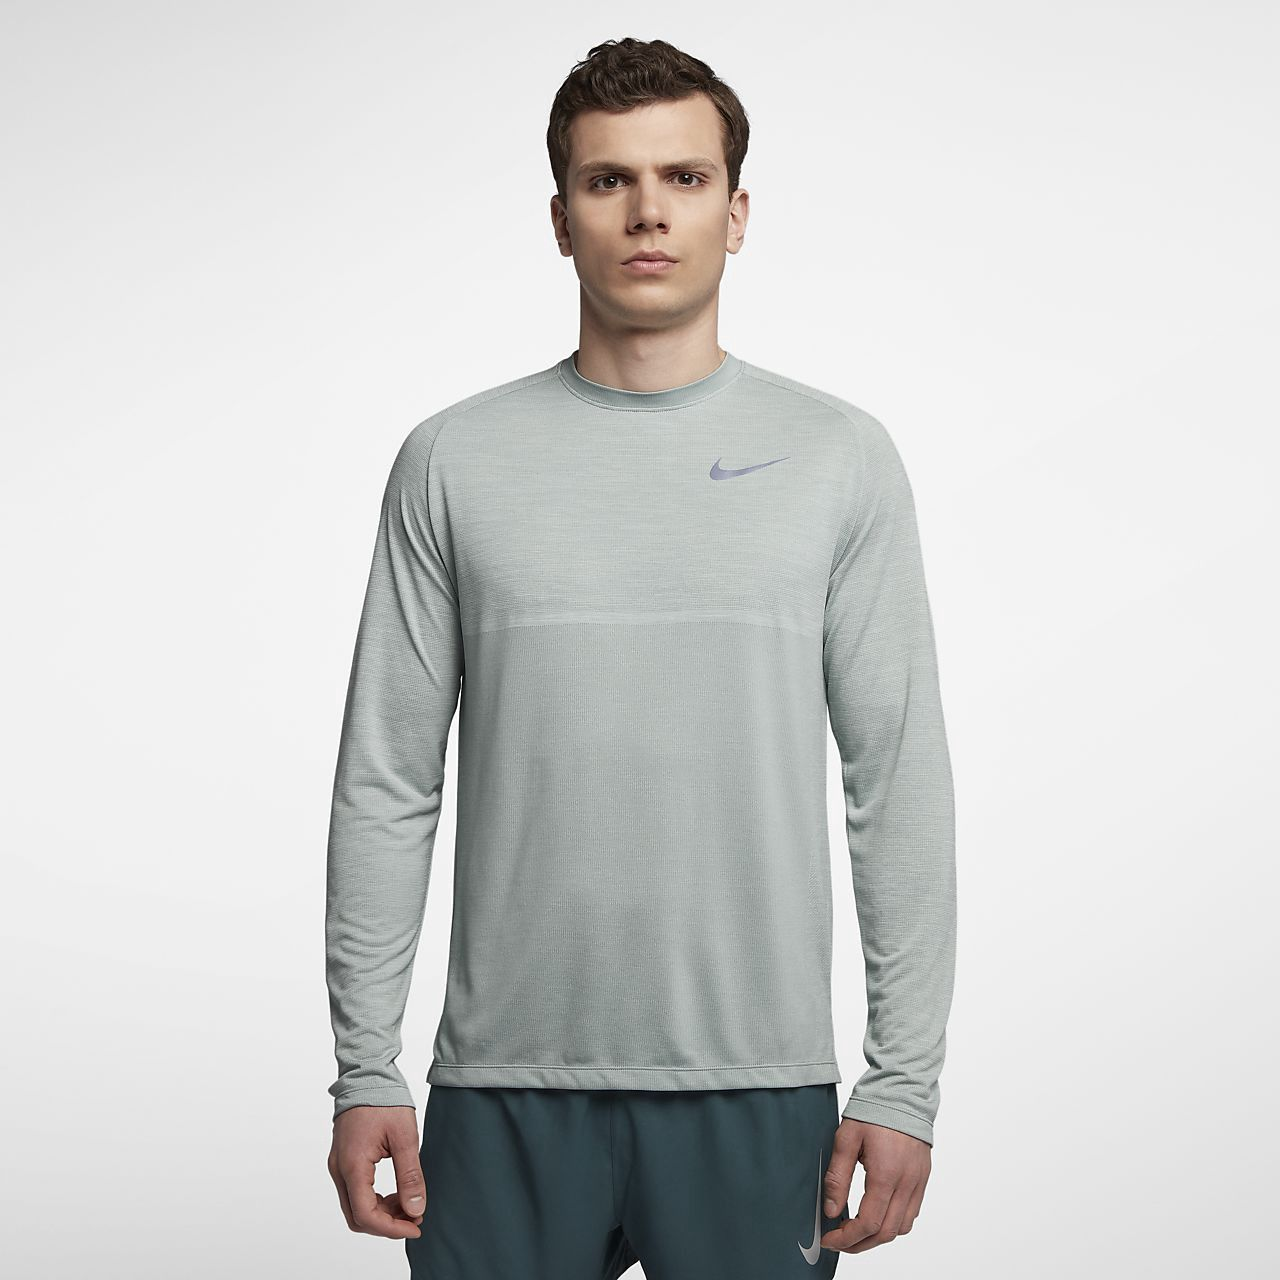 151c4d28 Nike Dri-Fit Medalist Men's Long Sleeve Running Top - M | Products ...